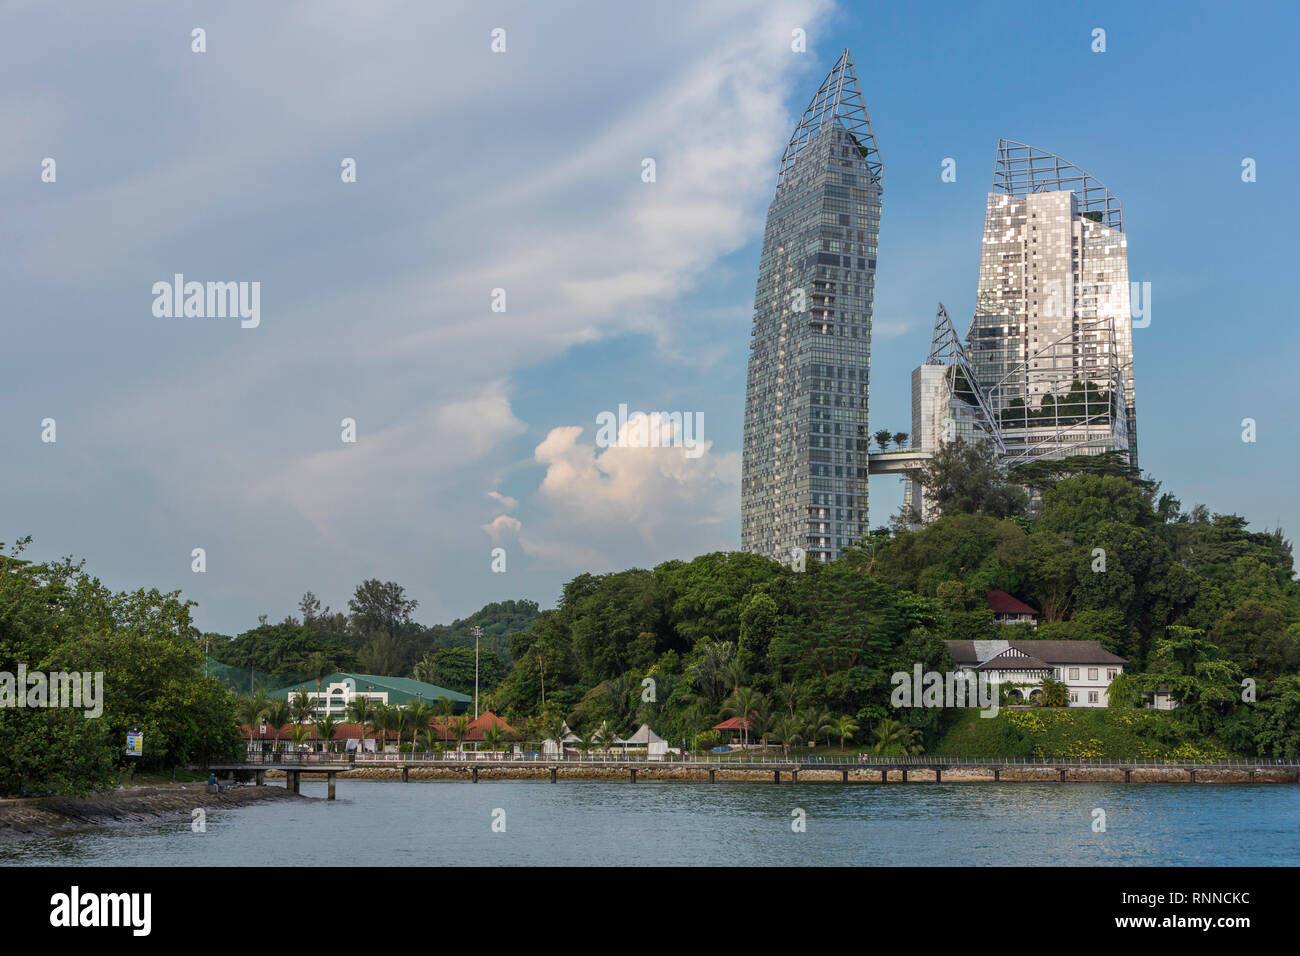 Singapore. Juxtaposition of Old and New: Daniel Libeskind's 'Reflections' in Background vs. Harbourmaster's 1920-era House in foreground on right.  Th - Stock Image